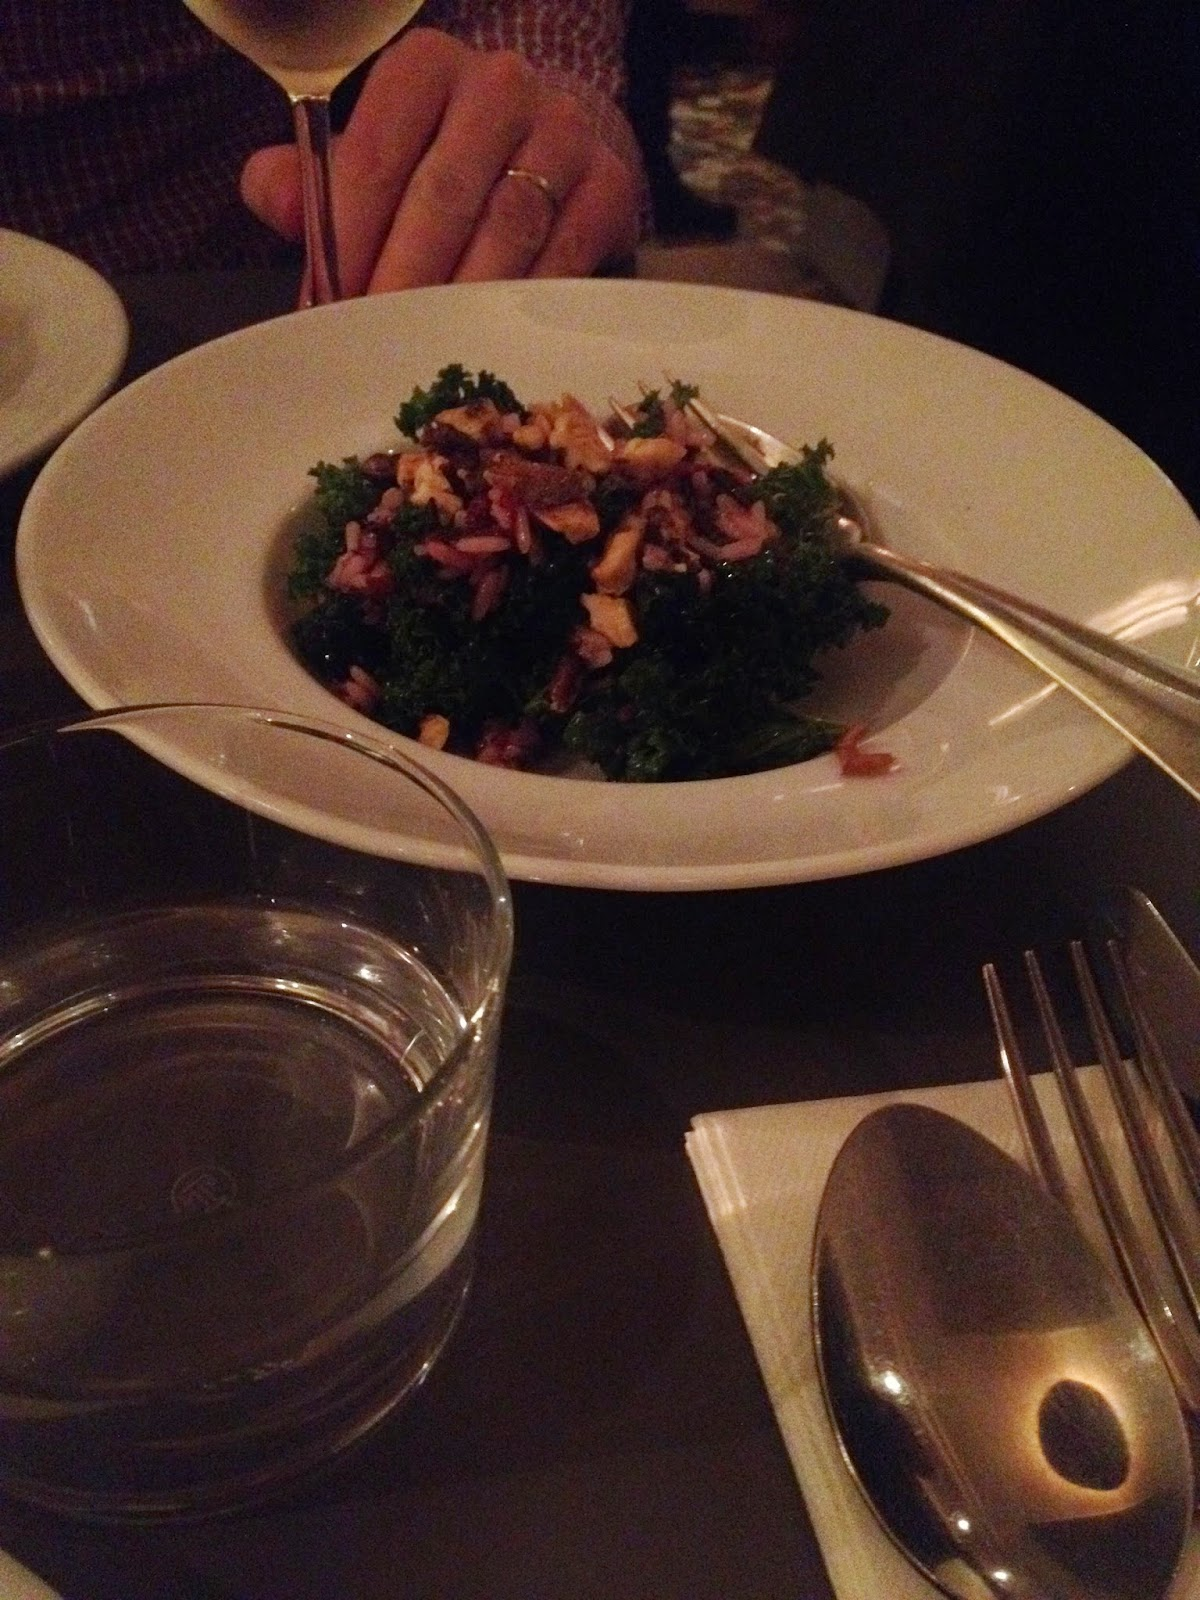 Wild rice, cranberry and kale salad at Café de Mars, Paris